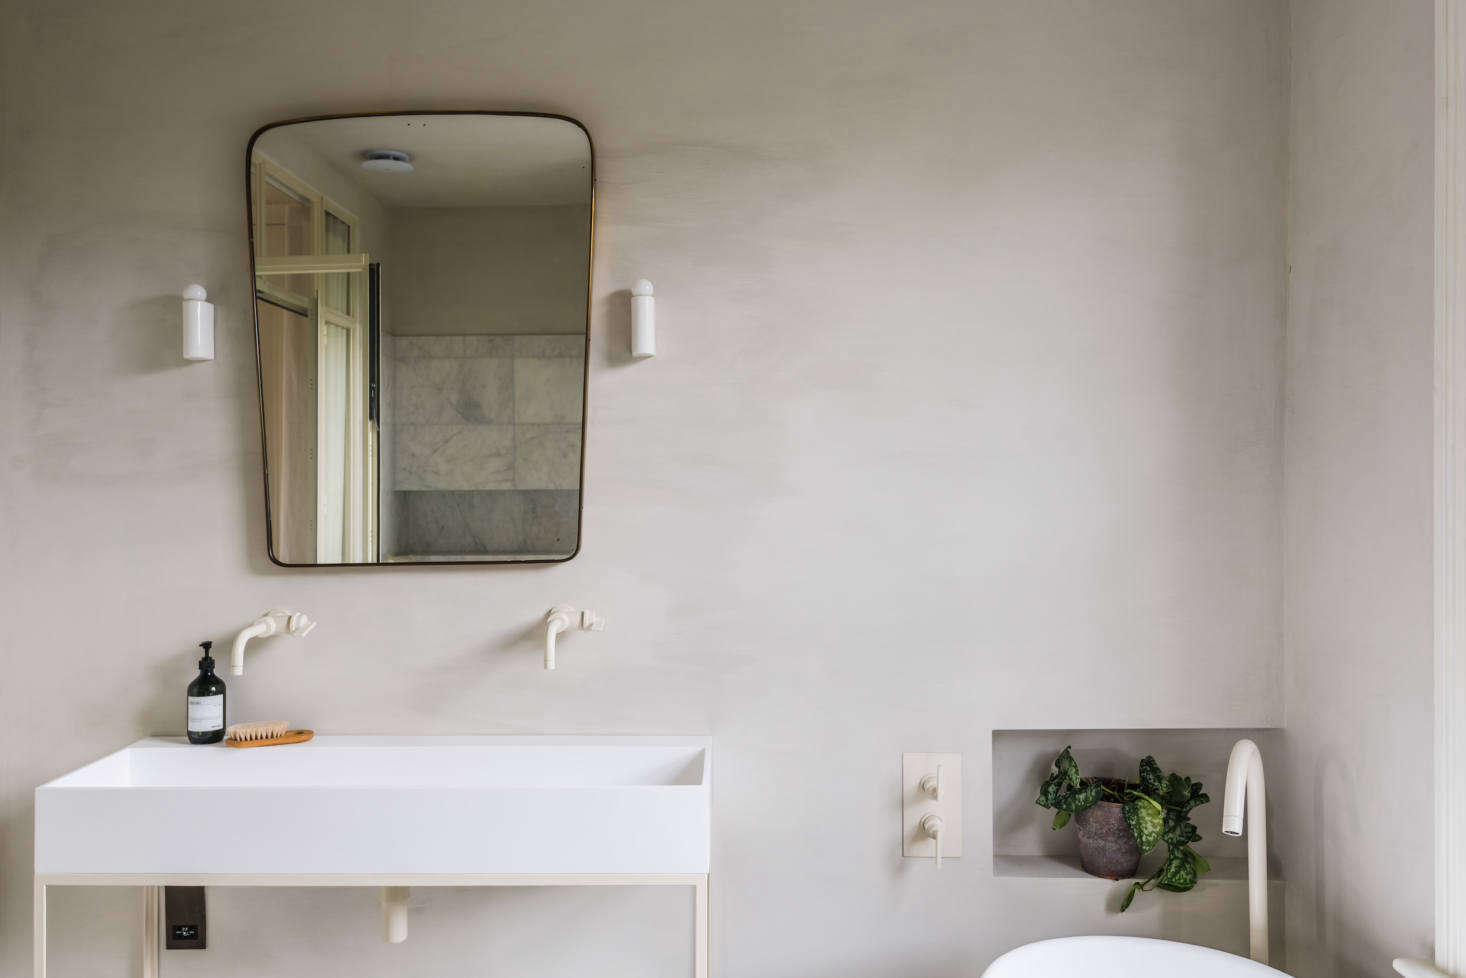 All the fixtures, powder-coated oyster white, are by Studio Ore. The 50s Italian brass mirror is from Béton Brut.